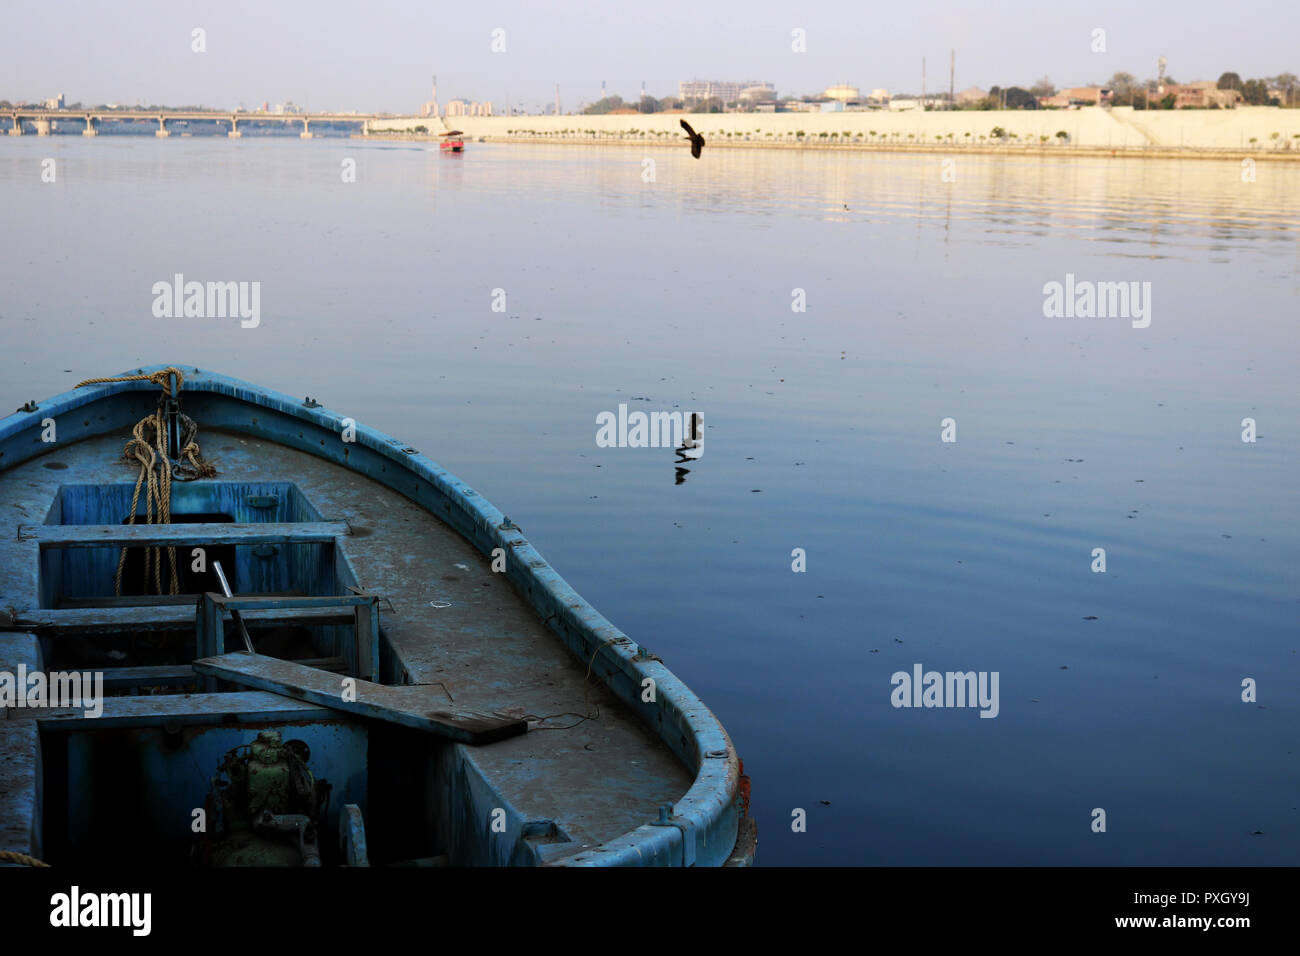 Ahmedabad river front blue boat in blue water - Stock Image